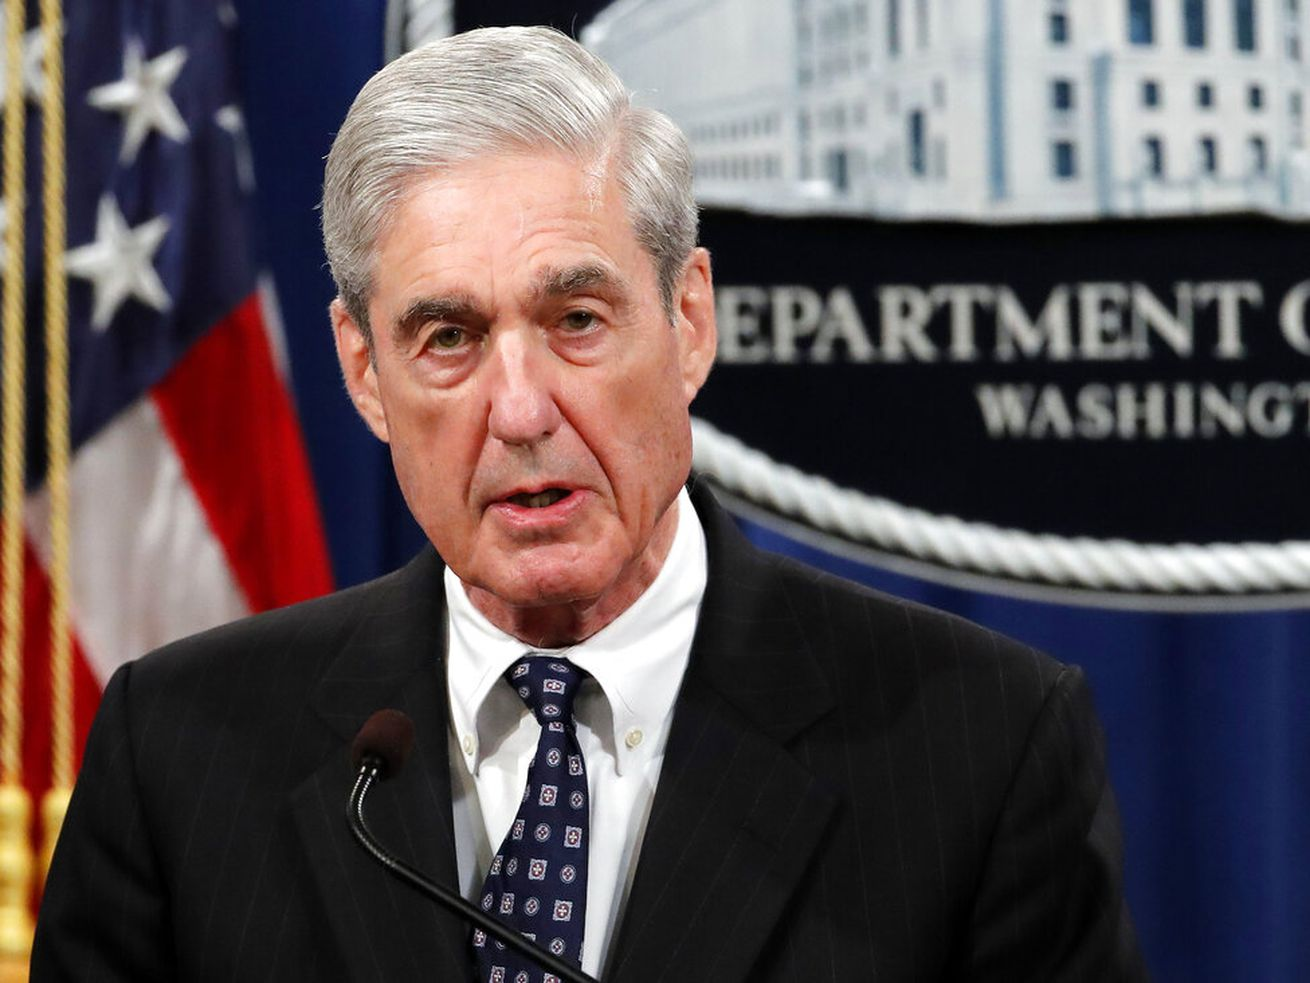 In this May 29, 2019, file photo, special counsel Robert Mueller speaks at the Department of Justice in Washington, about the Russia investigation.